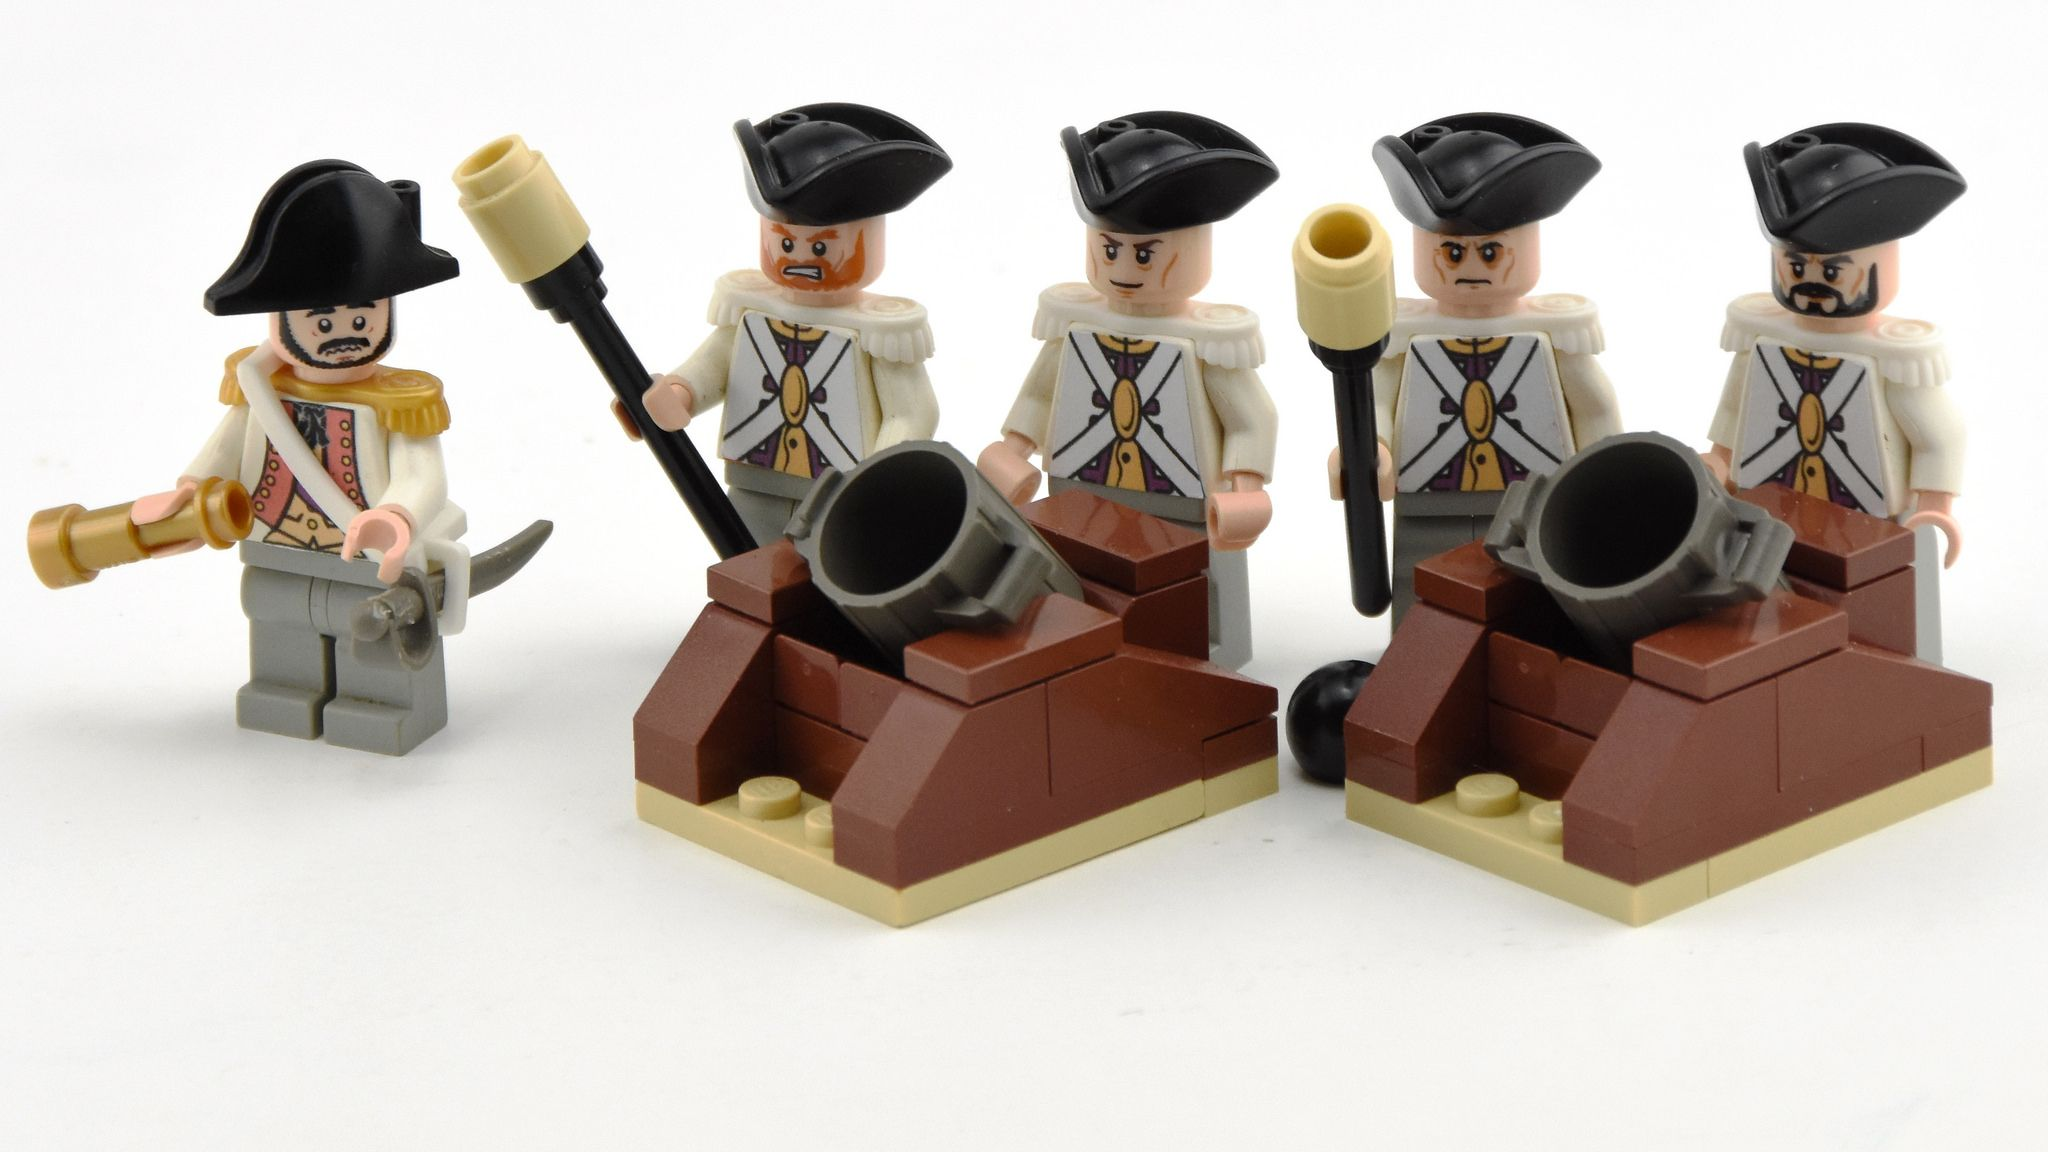 Brickwarriors Military WWII Custom MORTAR Heavy Weapon for Lego Minifigures